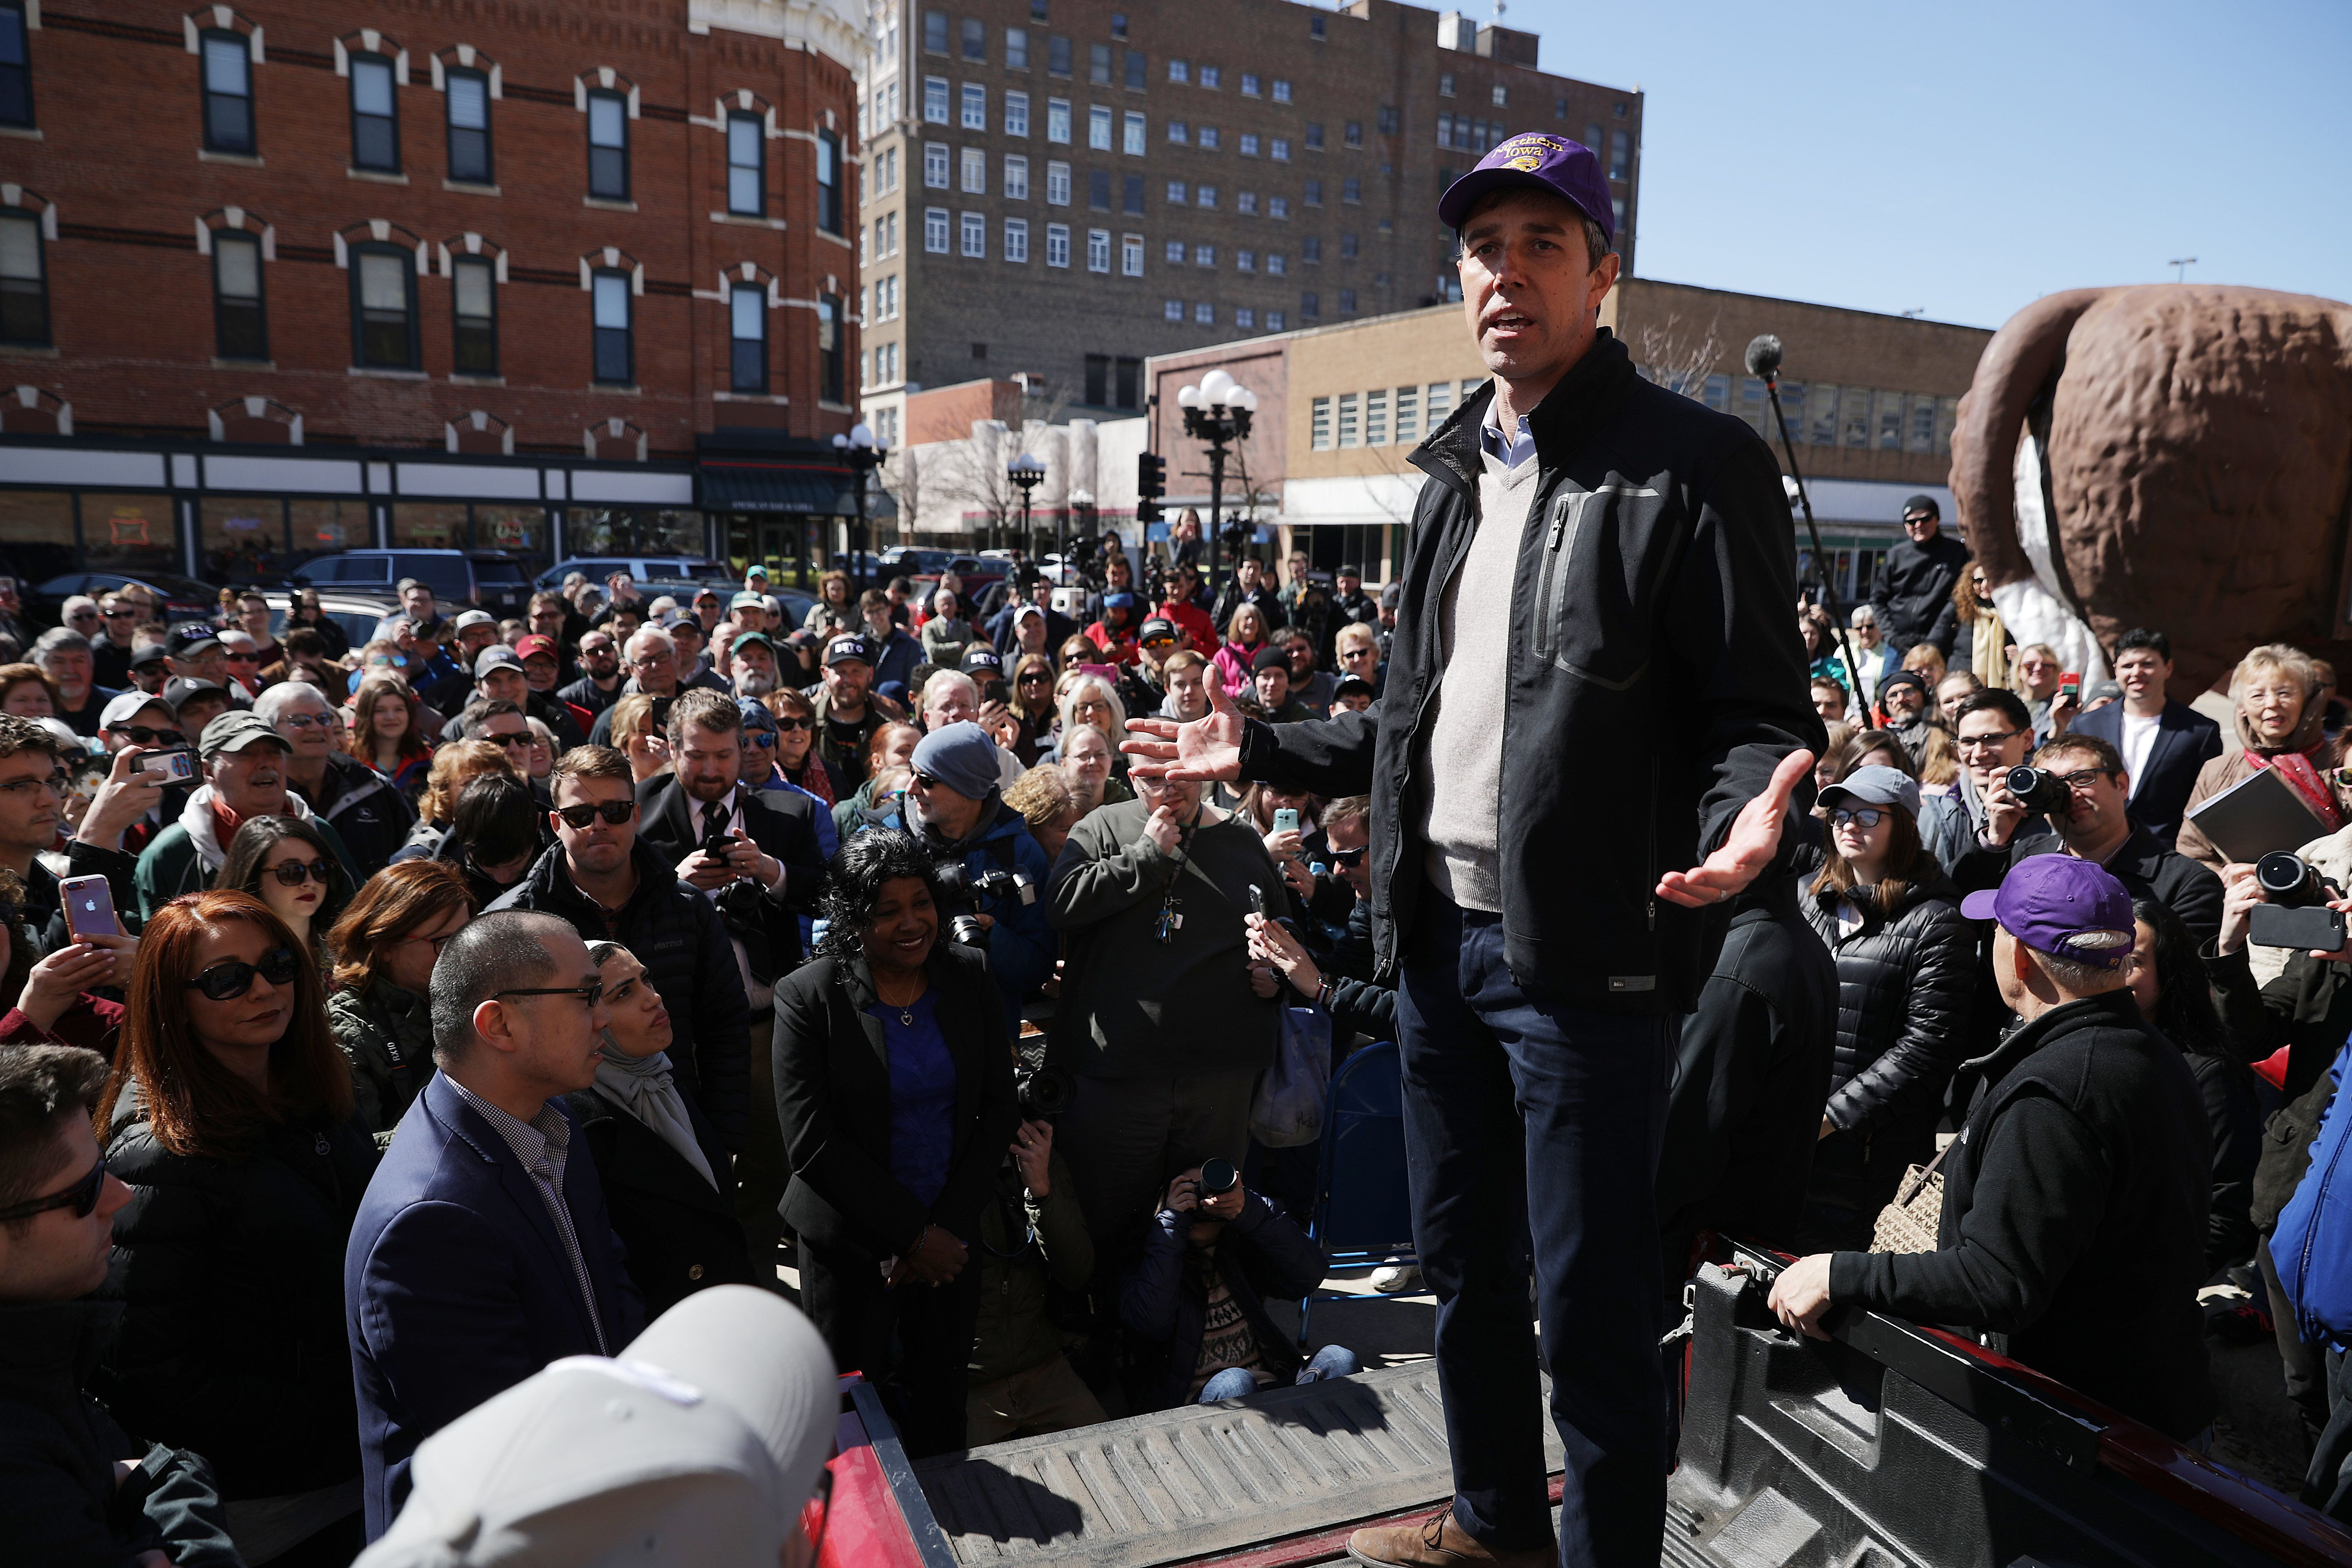 Former Texas Rep. Beto O'Rourke swept through Iowa with a horde of media in tow and large crowds awaiting him.